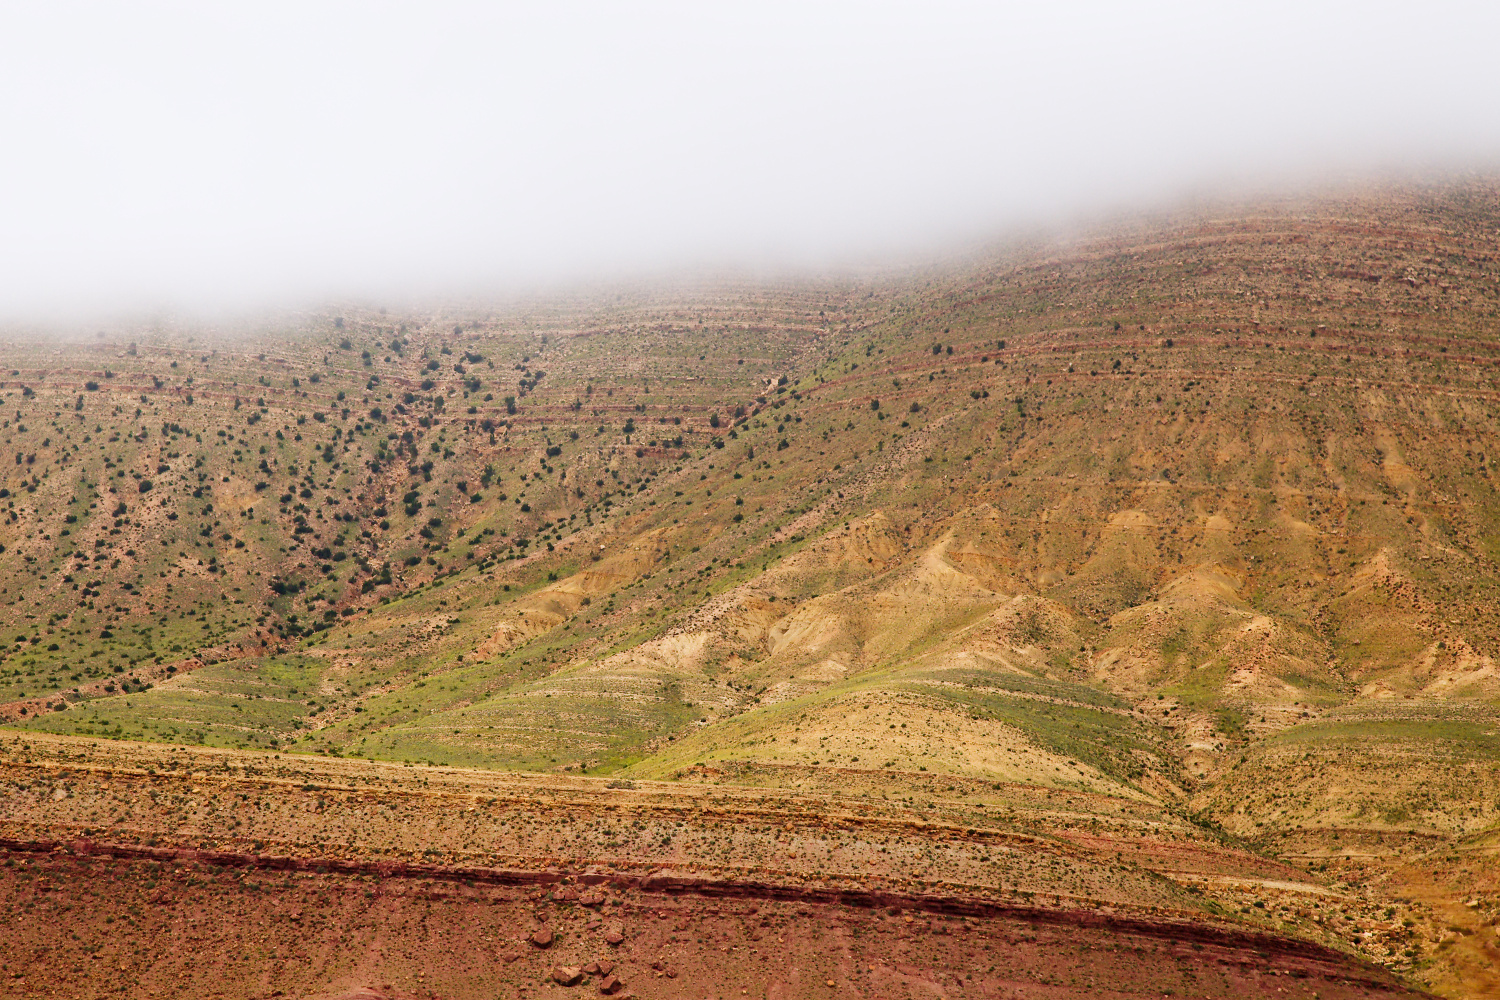 Geological features photographed from a highway in the Atlas mountains of Morocco. Tips for Taking Better Pictures from a Moving Vehicle